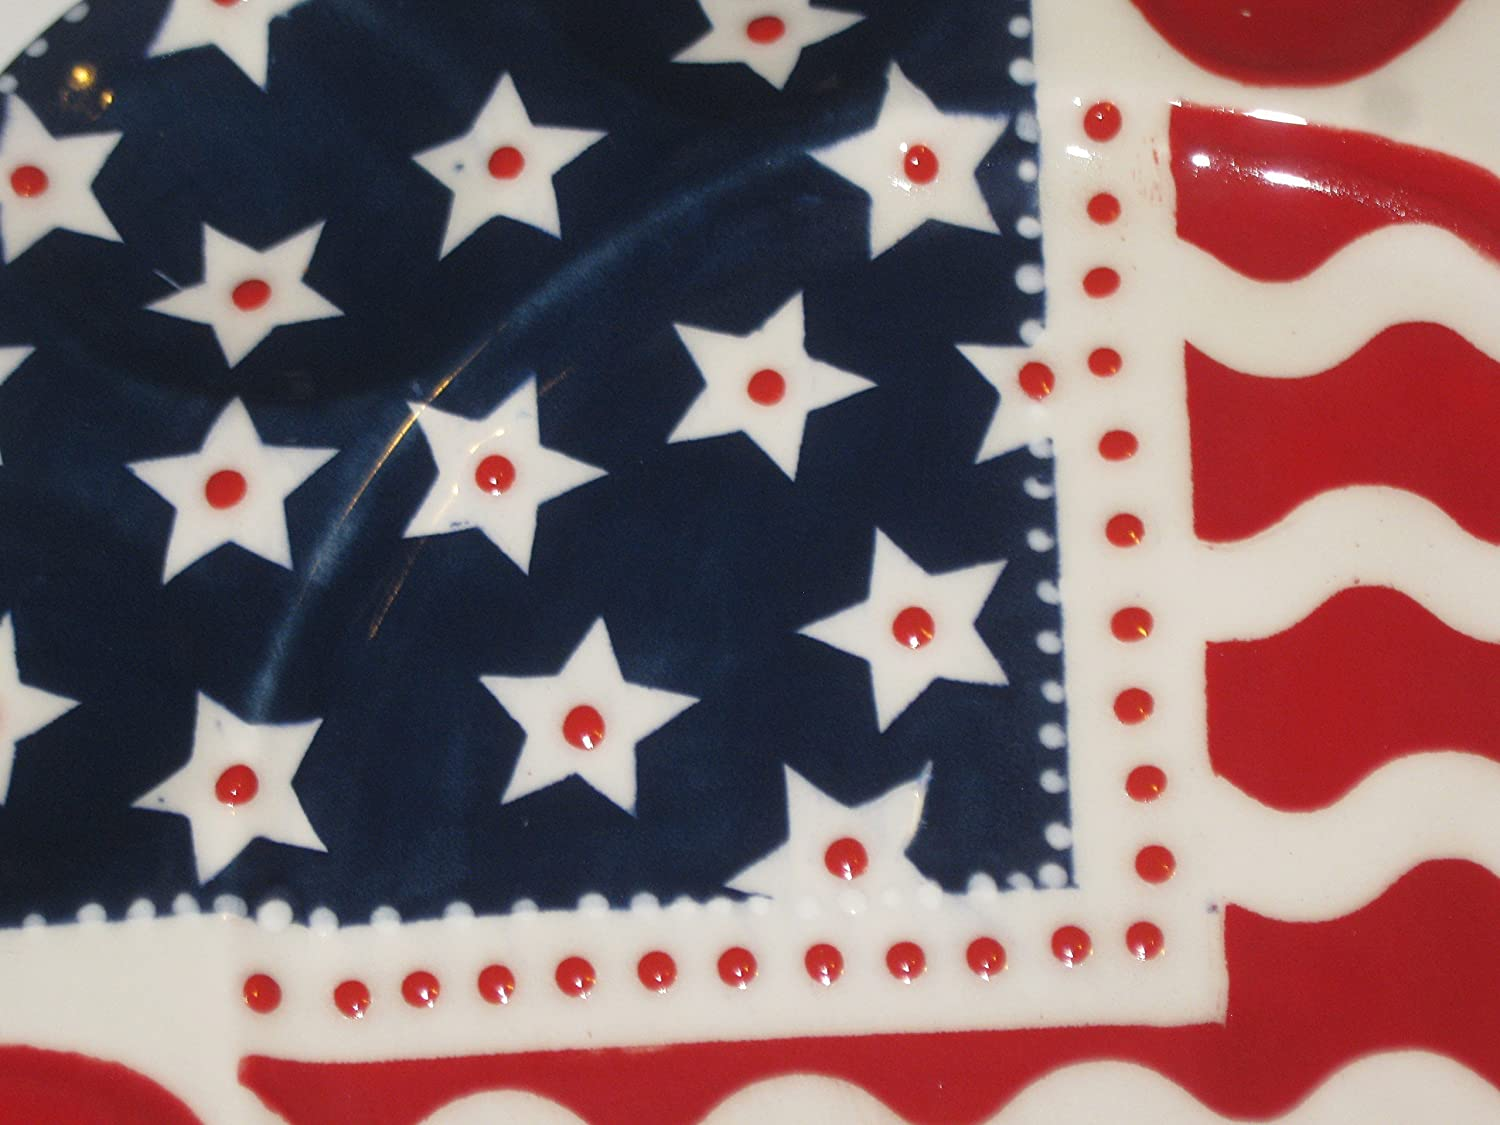 USA hand painted 4th of July deviled egg platter